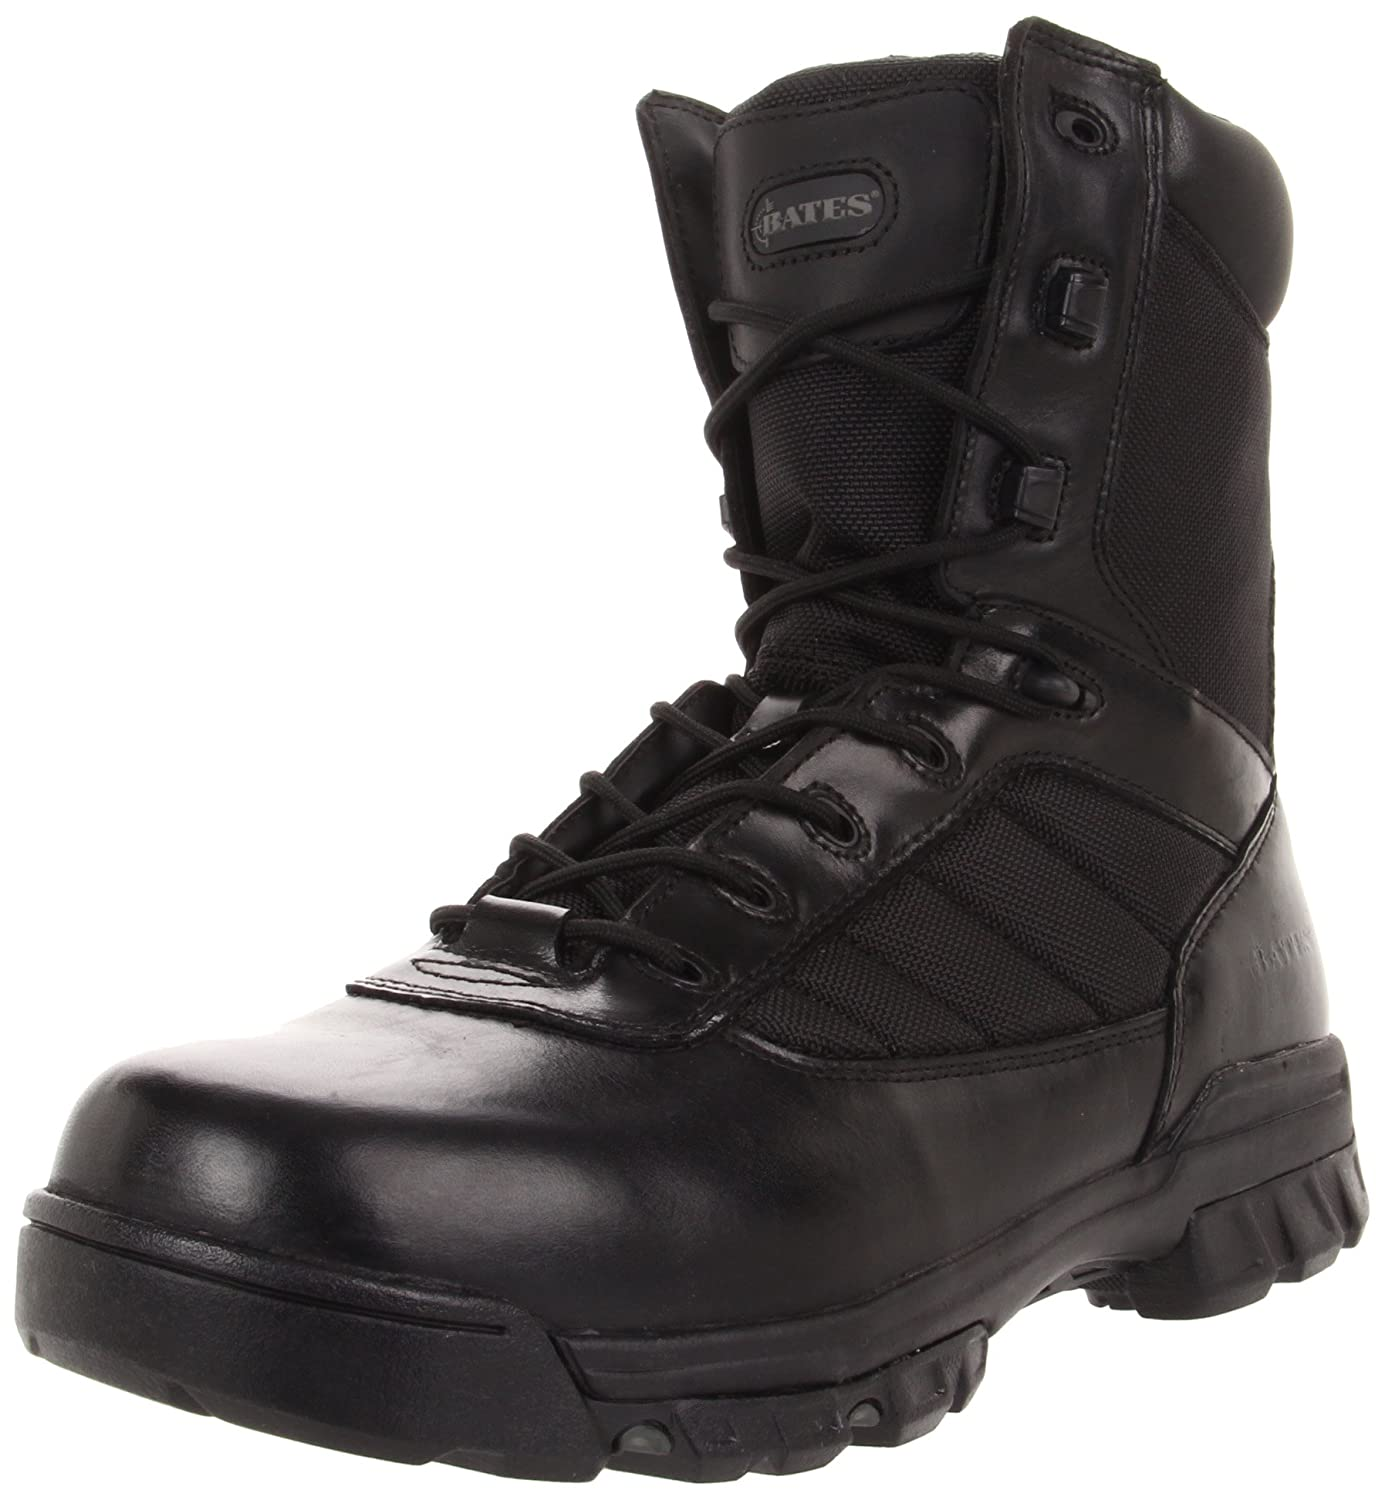 Bates Men's Ultra-Lites 8 Inches Tactical Sport Side-Zip Boot Bates Tactical Footwear